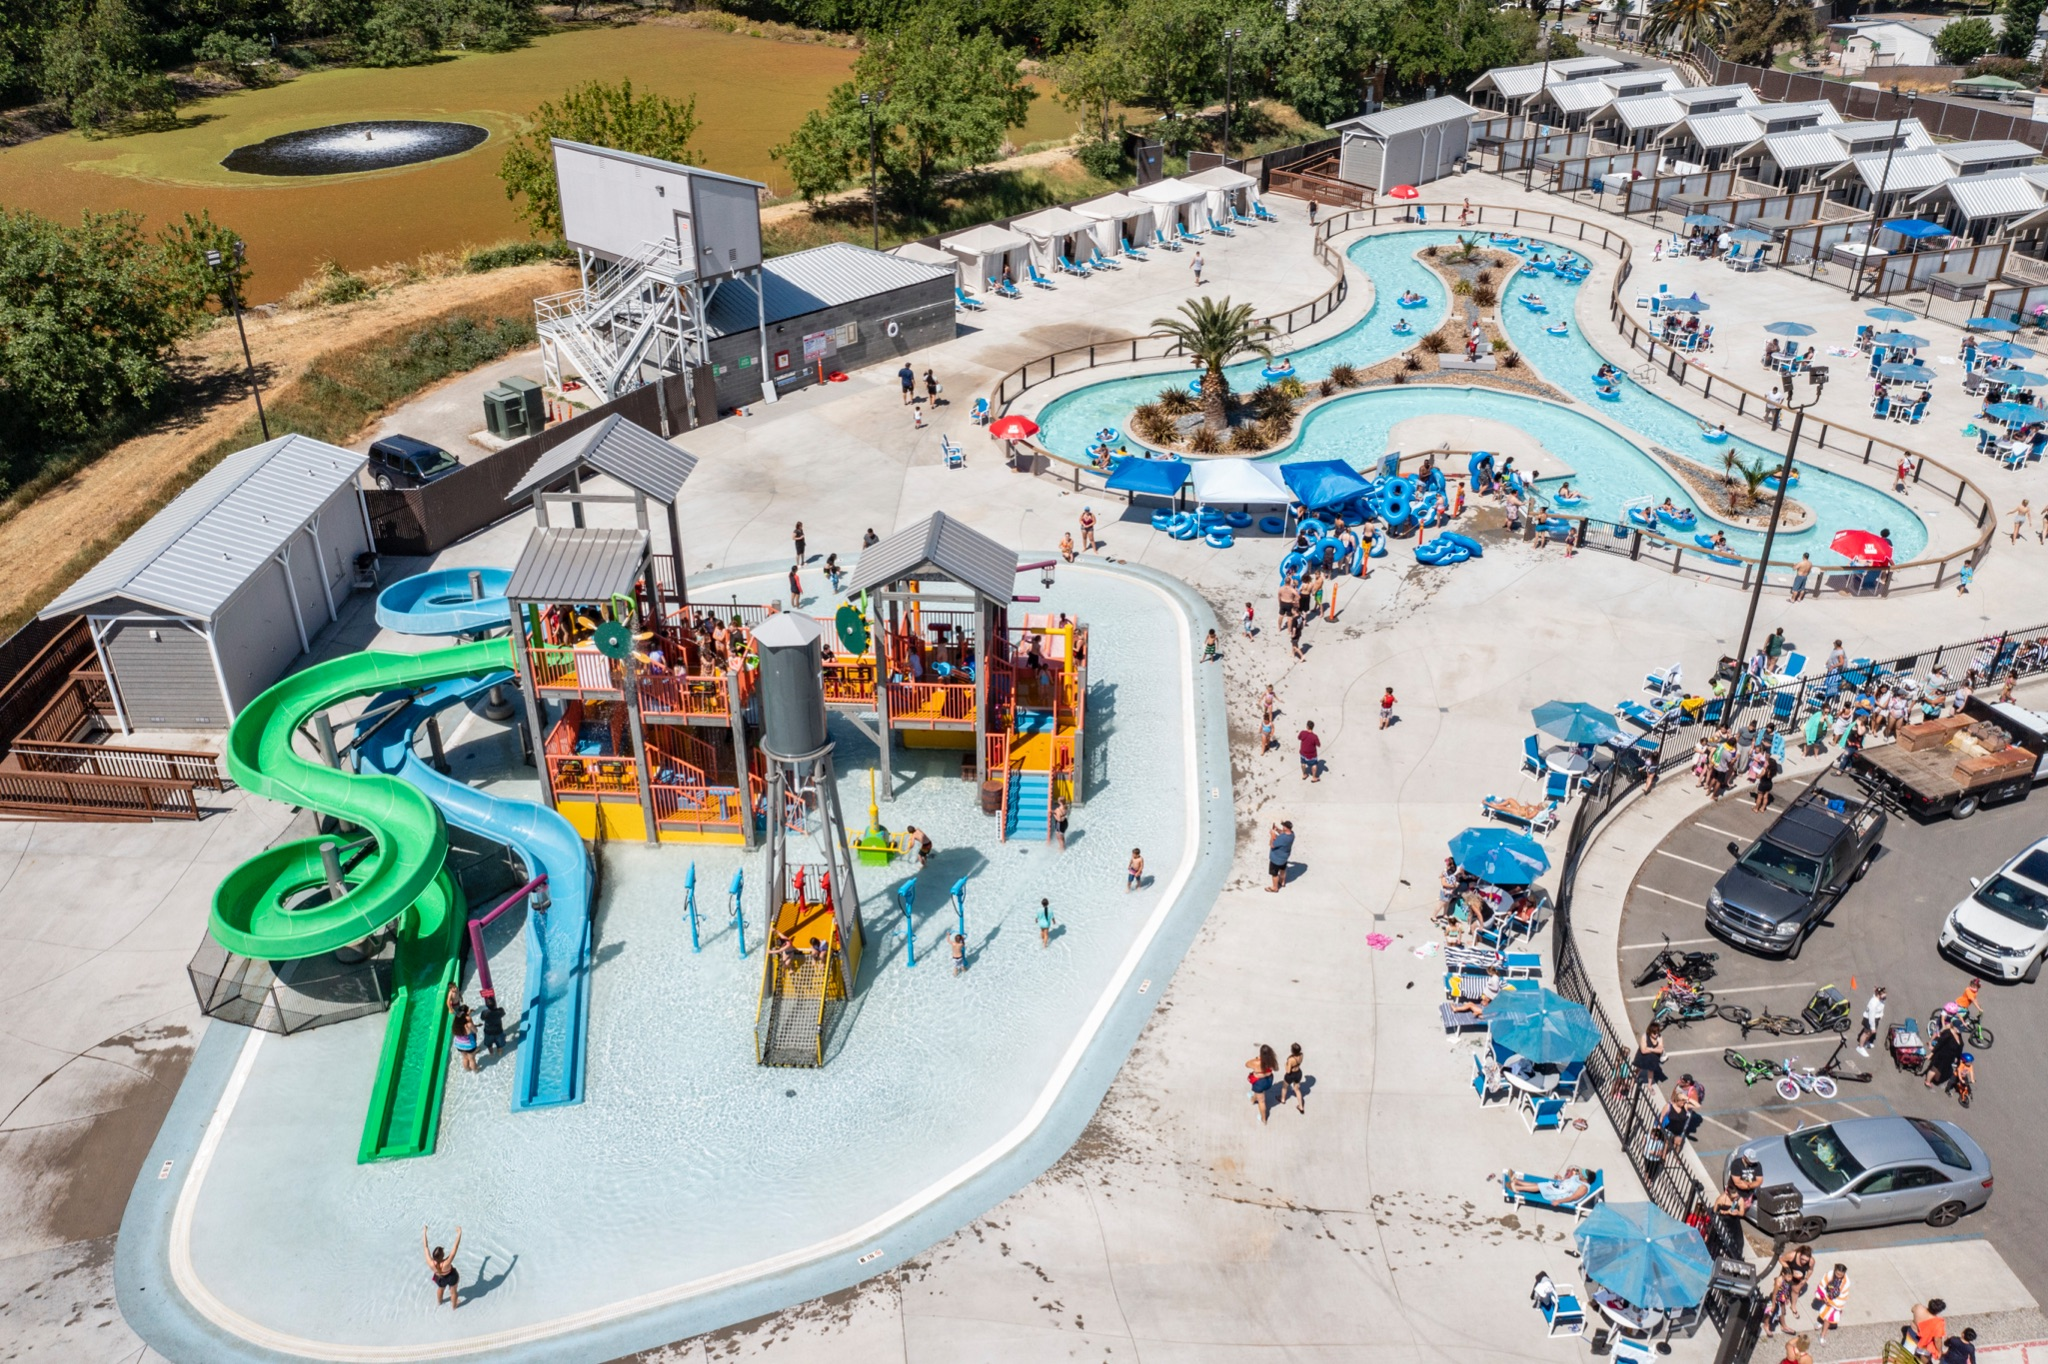 Ariel view of the pool and water zone at campground with cabins in the background.